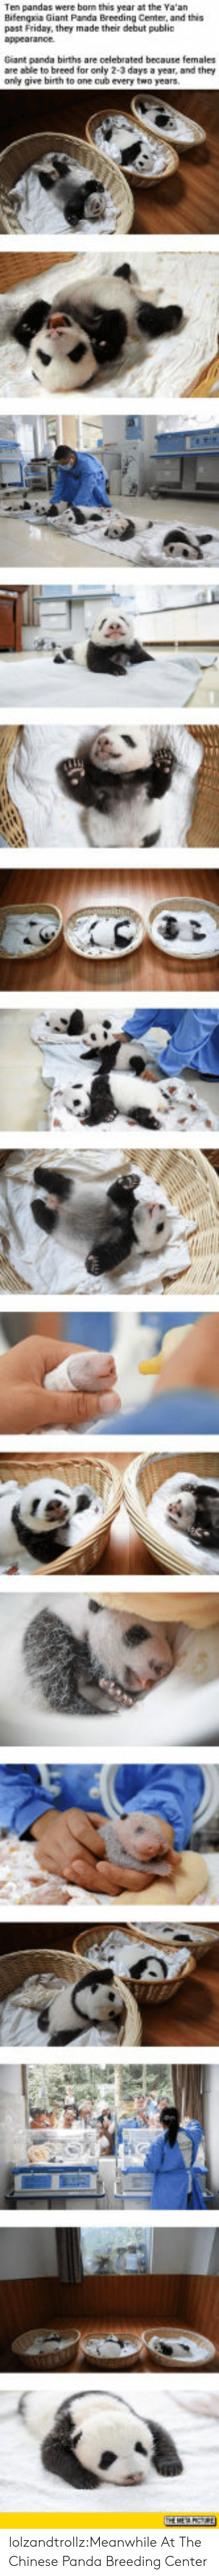 Friday, Tumblr, and Panda: Ten pandas were borm this year at the Ya'an  Bifengxia Giant Panda Breeding Center, and this  past Friday, they made their debut publi  Giant panda births are celebrated because females  are able to breed for only 2-3 days a year, and they  only give birth to one cub every two years lolzandtrollz:Meanwhile At The Chinese Panda Breeding Center